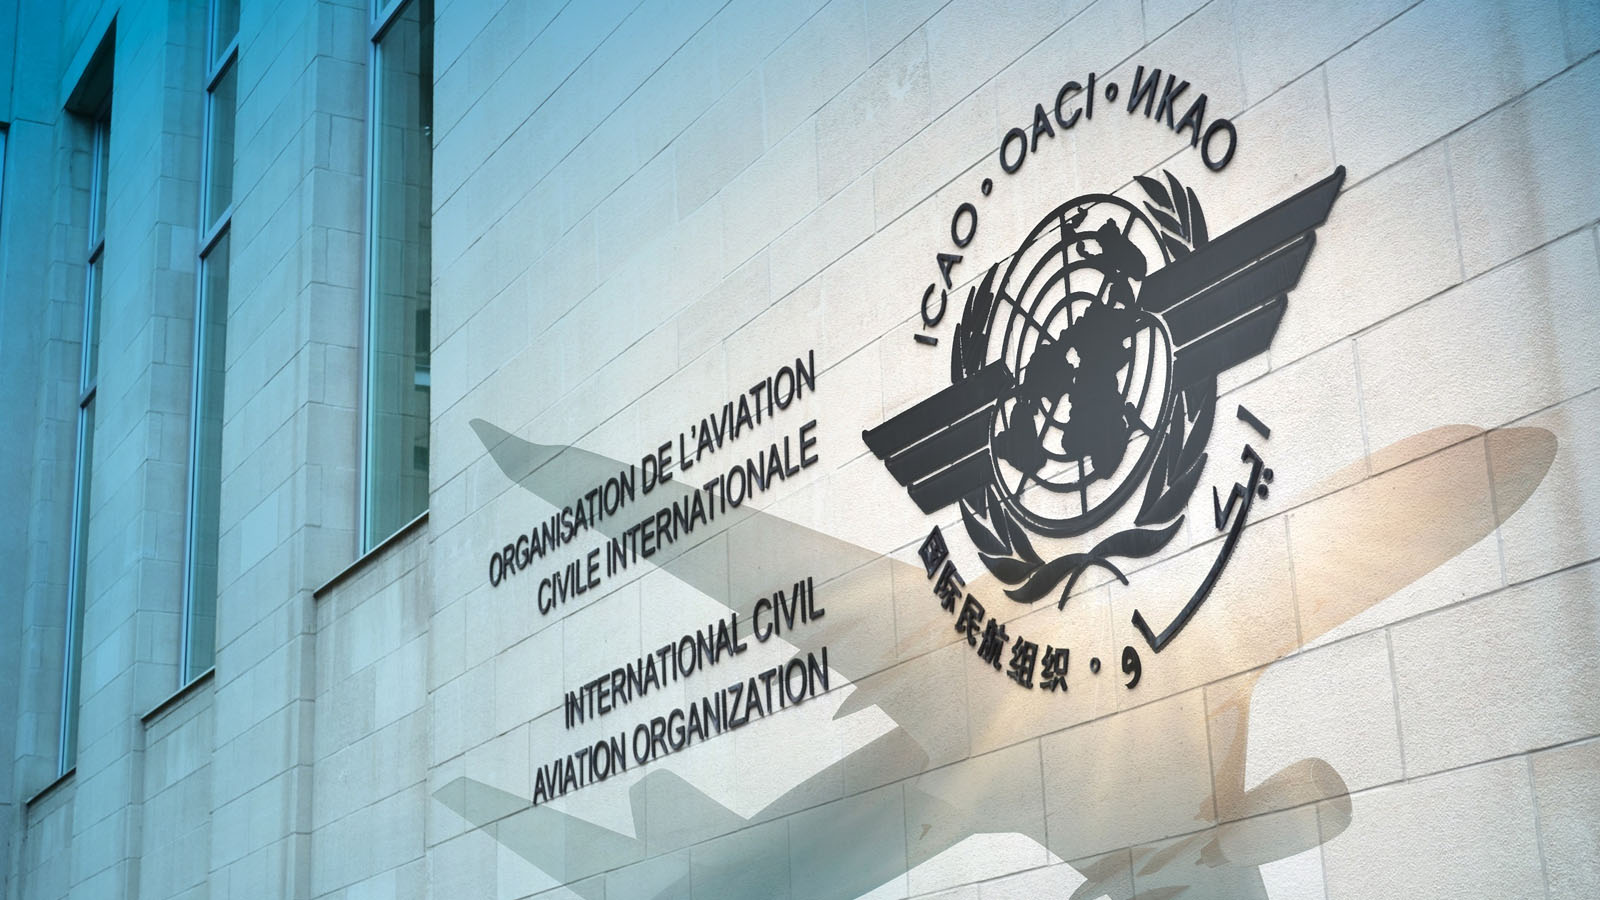 ICAO awards Guyana for safety